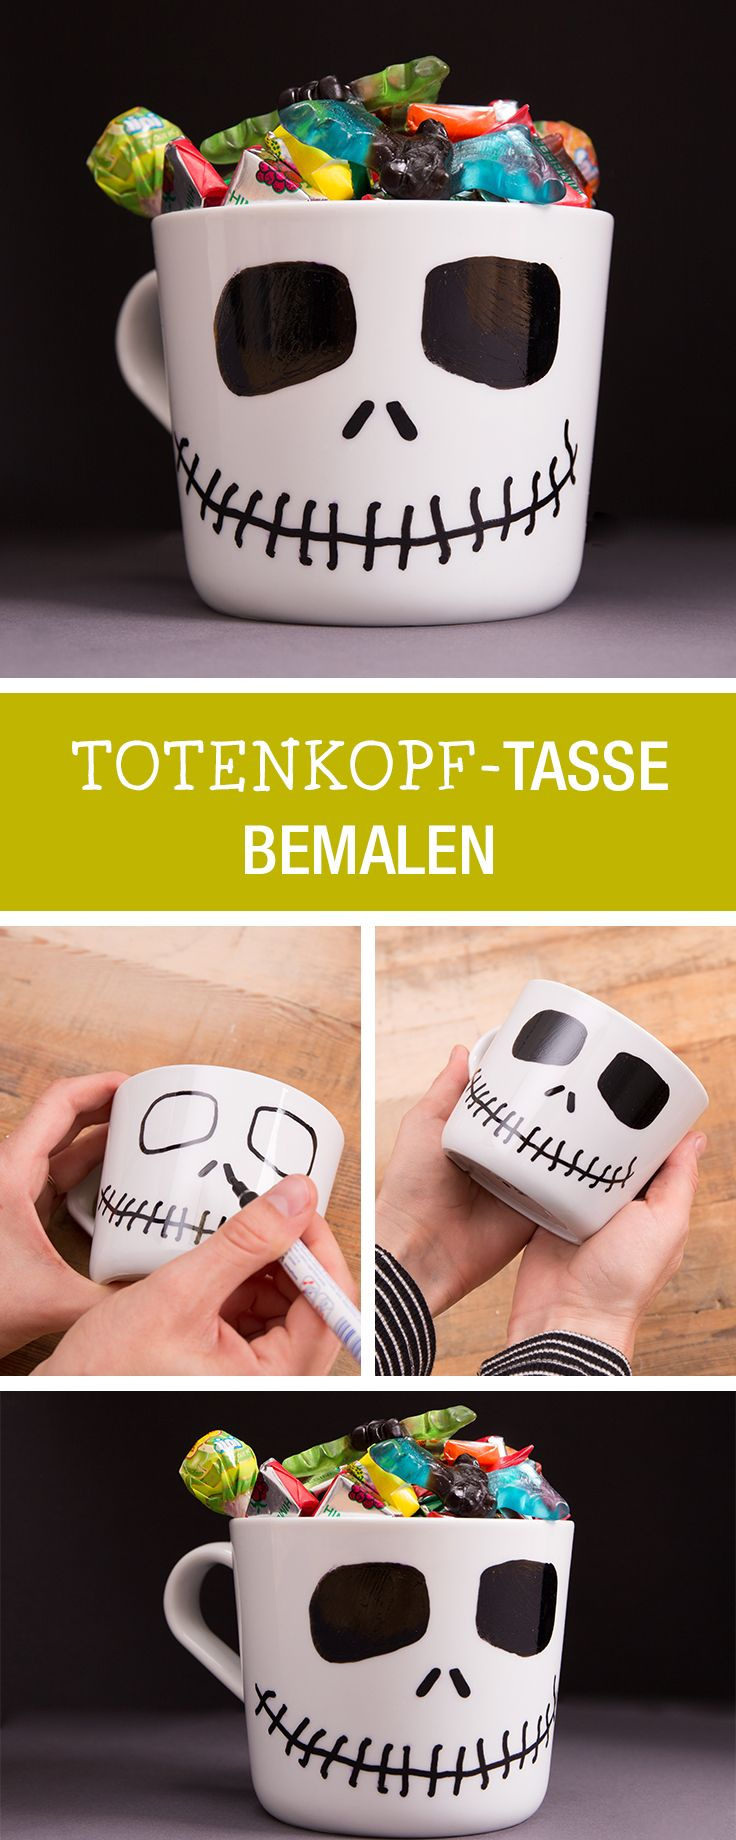 Halloween-Deko selbermachen: Tasse als Totenkopf bemalen / halloween party: make your own decoration skull via DaWanda.com